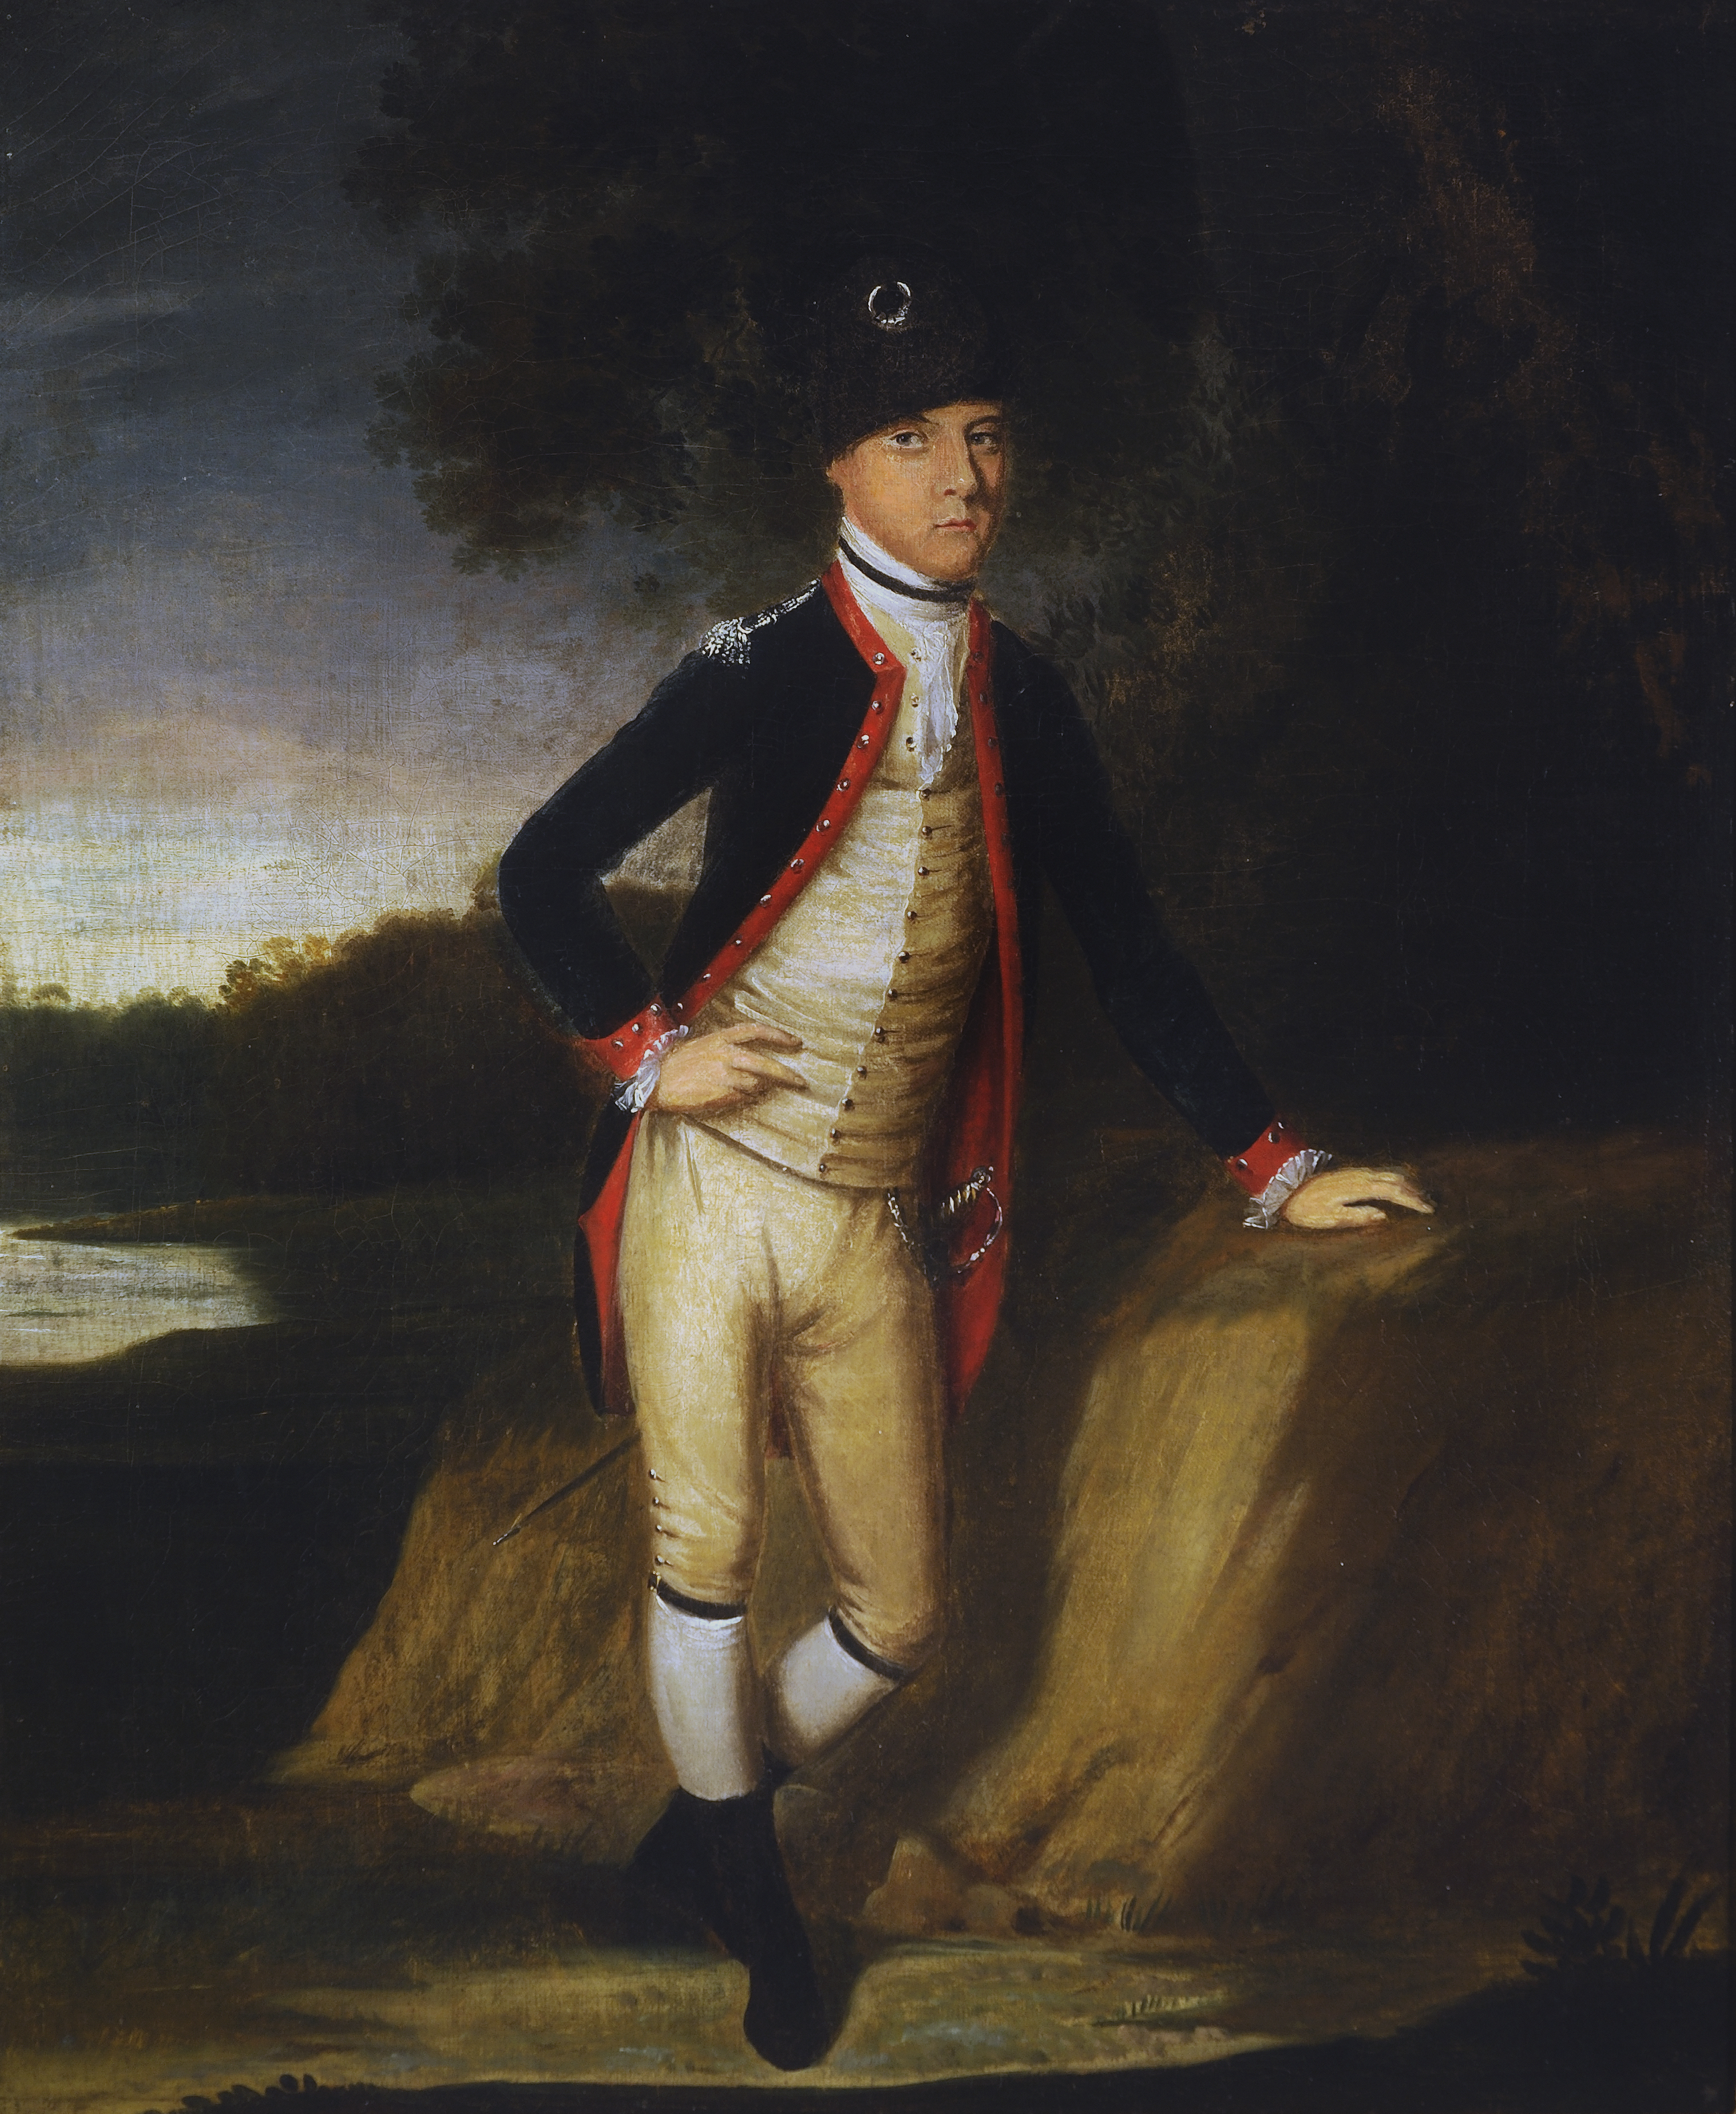 Jacob Shubrick by Benbridge, ca. 1777